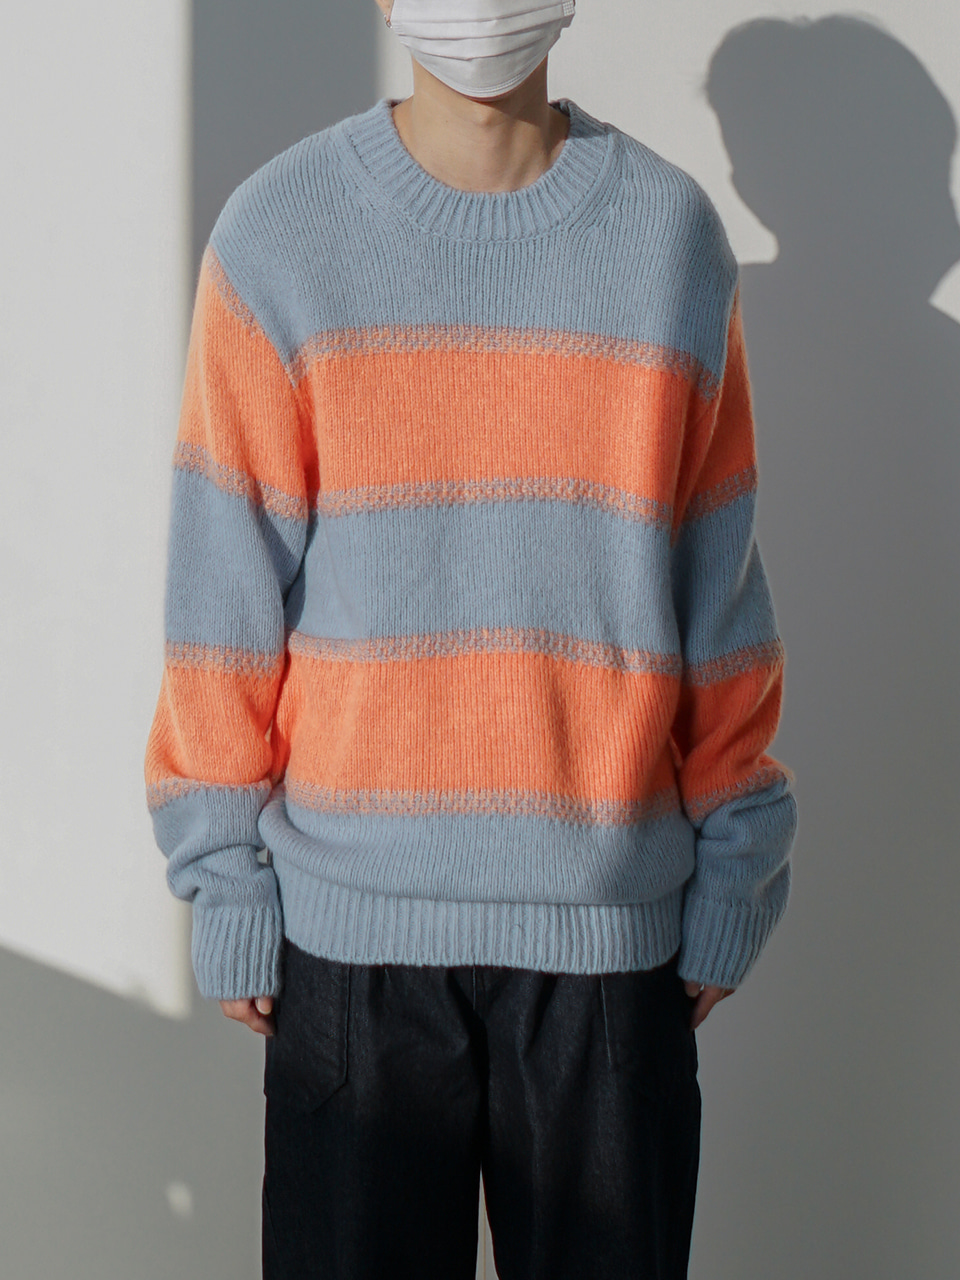 Row Range Knit (3color)